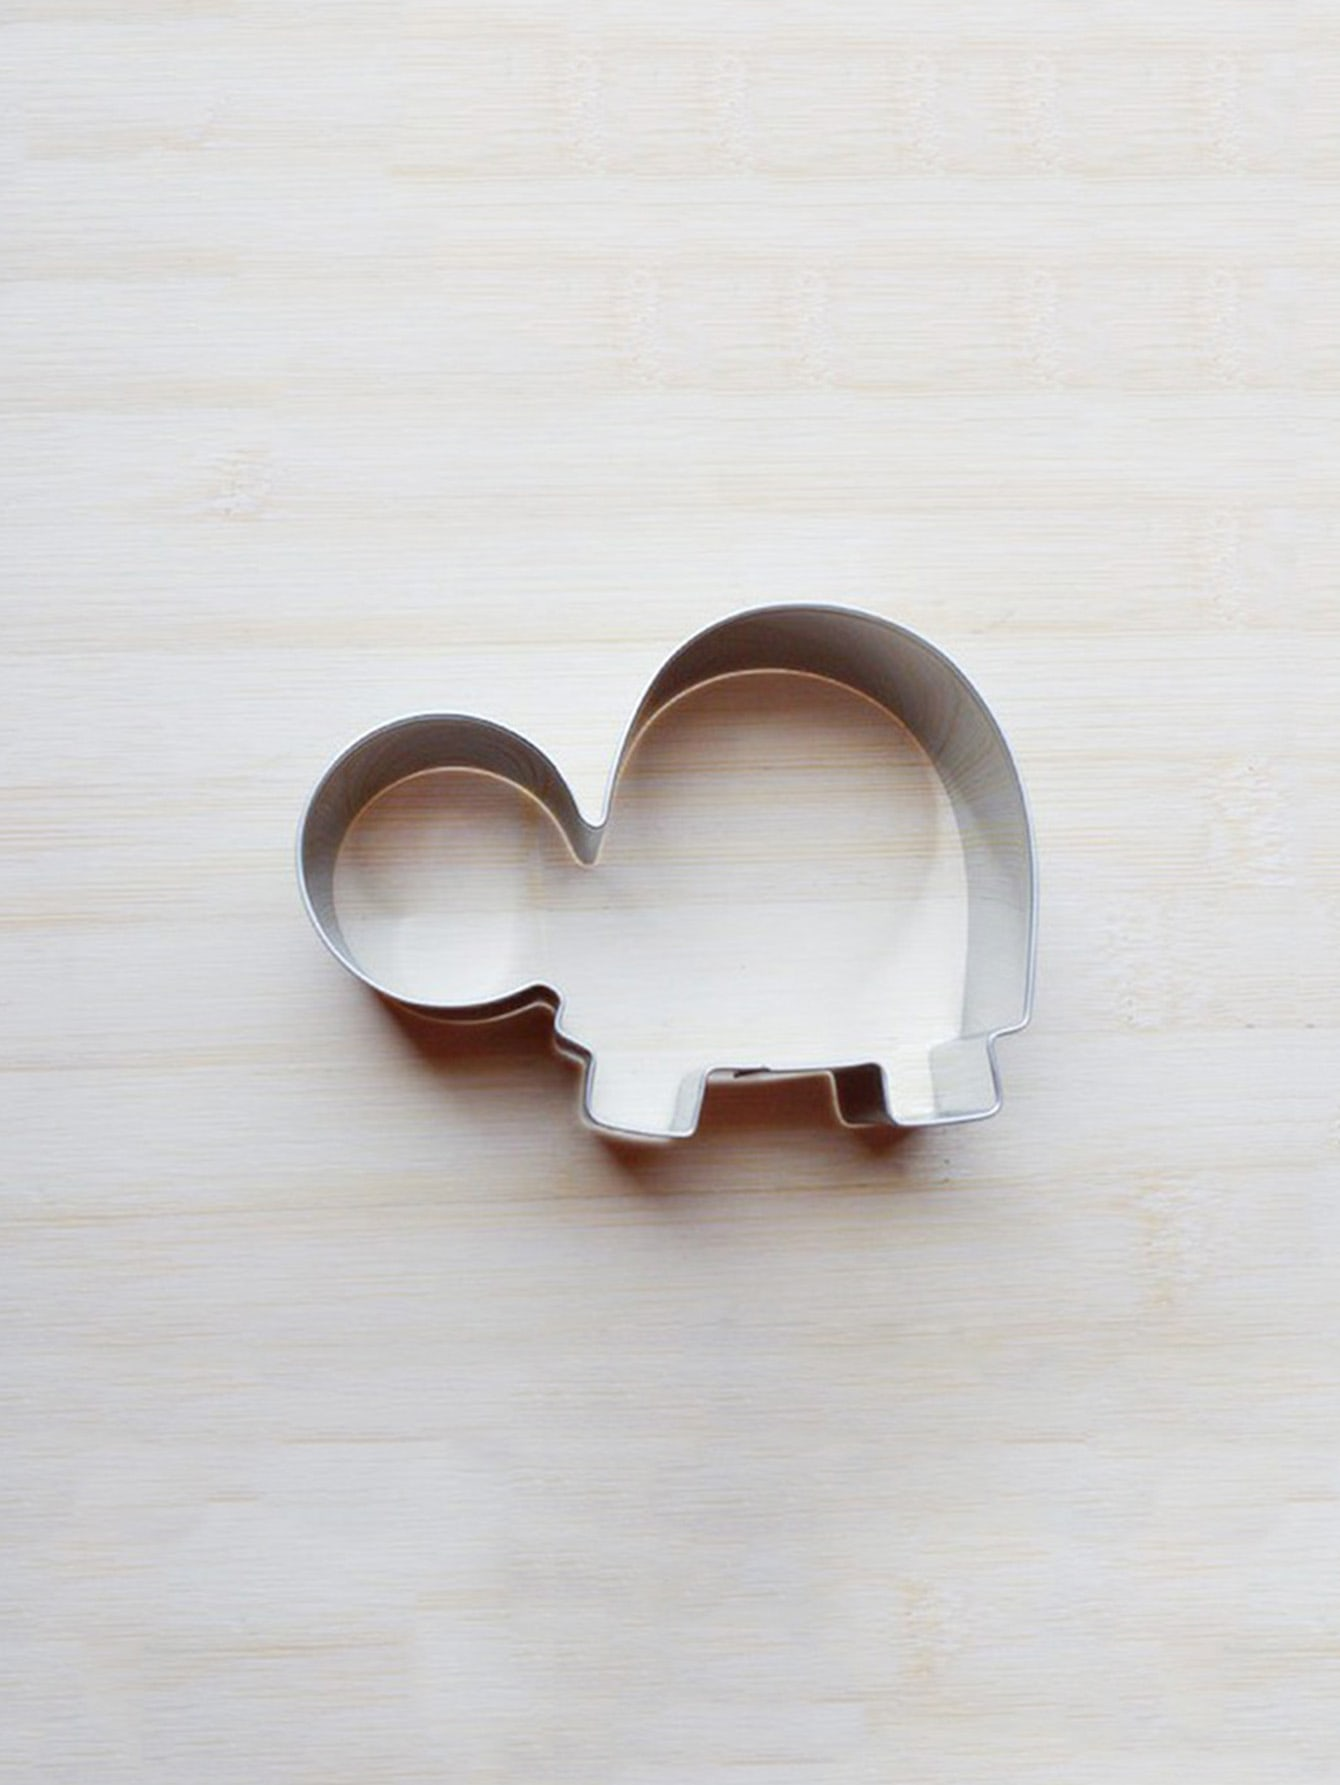 Stainless Steel Tortoise Cookie Cutter 1pc stainless steel abs chrysanthemum heart shaped spring cookie cutter